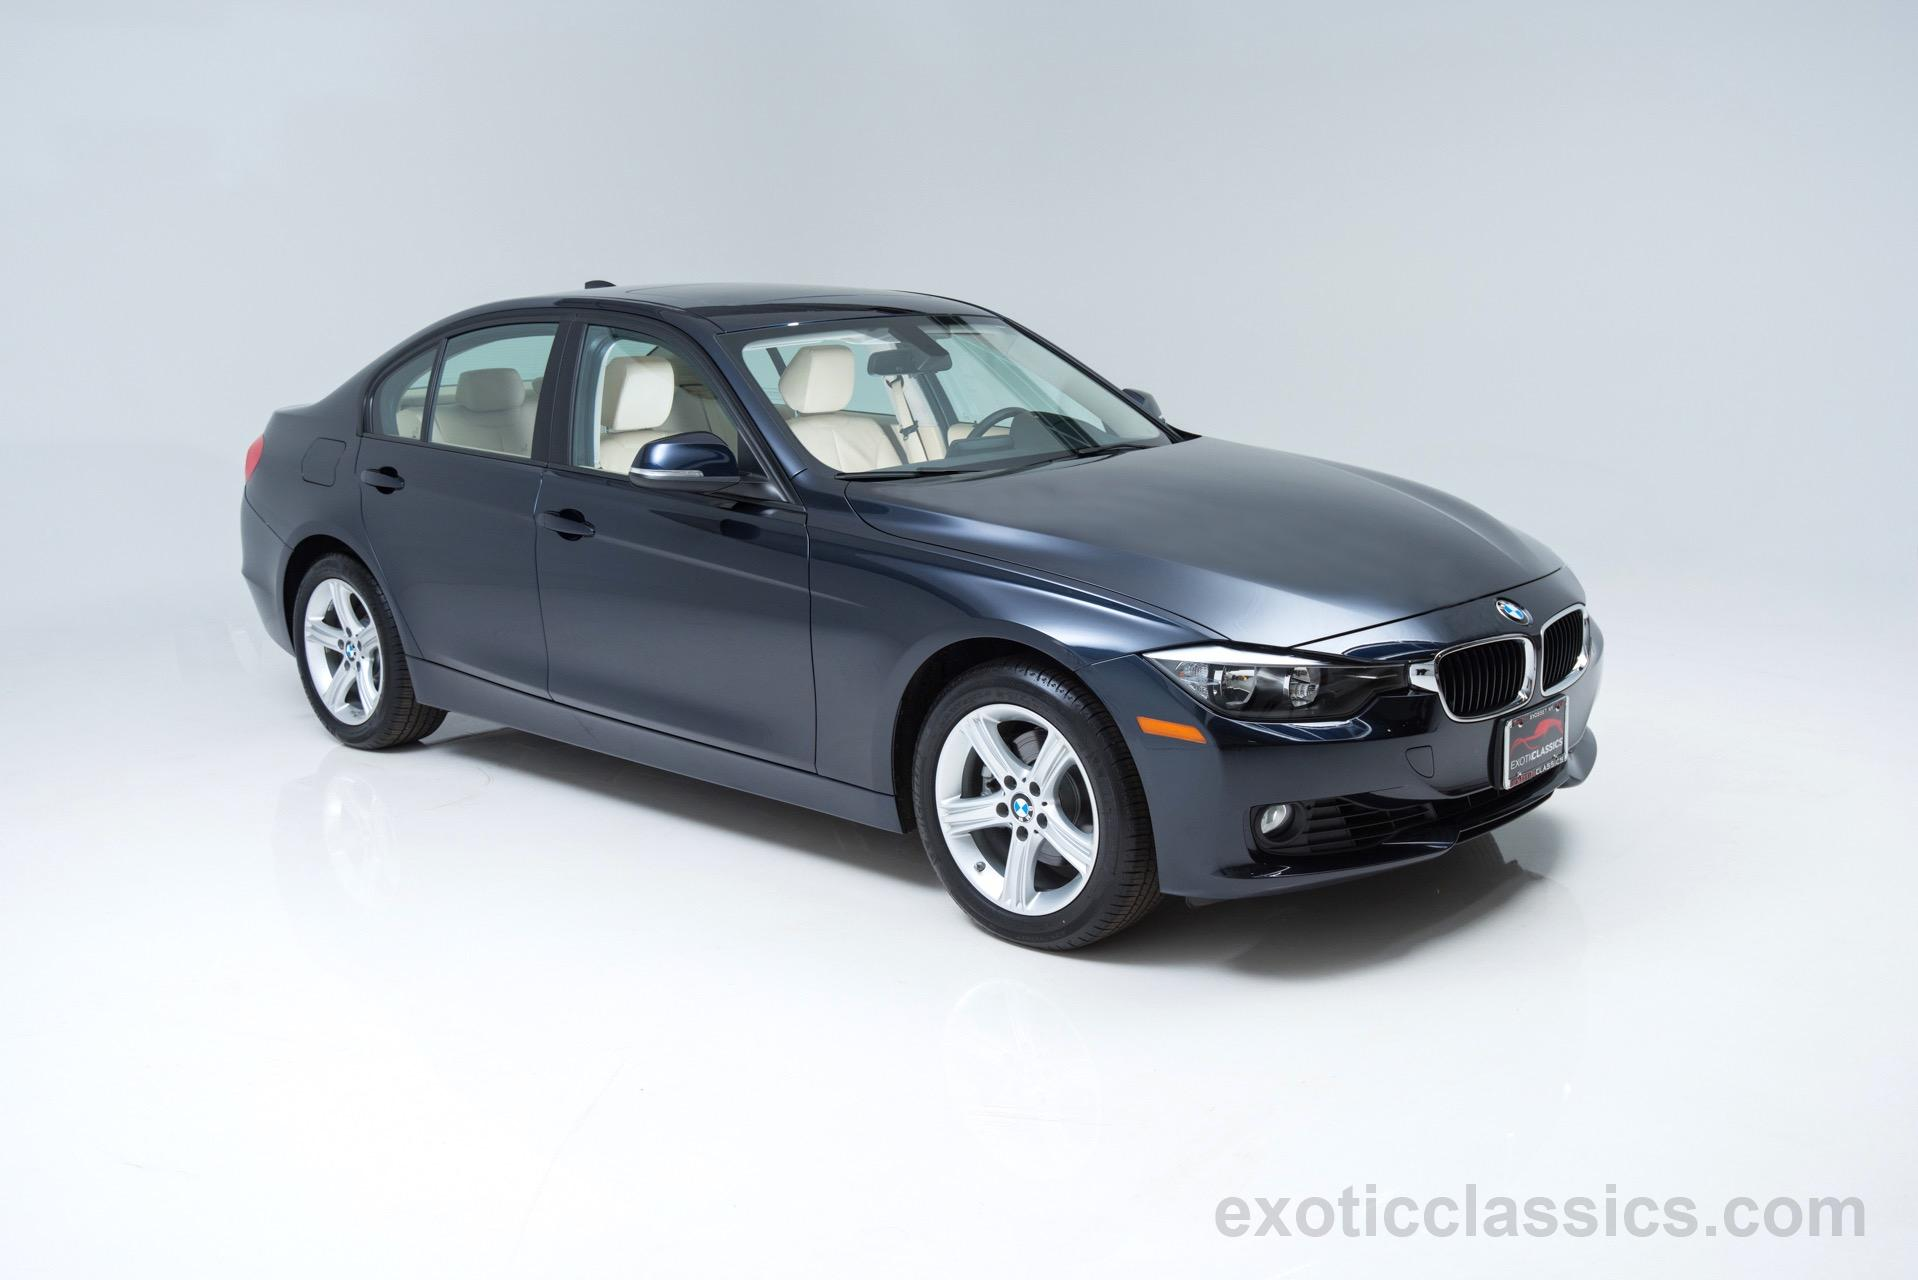 2013 Bmw 328i Xdrive 328i Xdrive Champion Motors